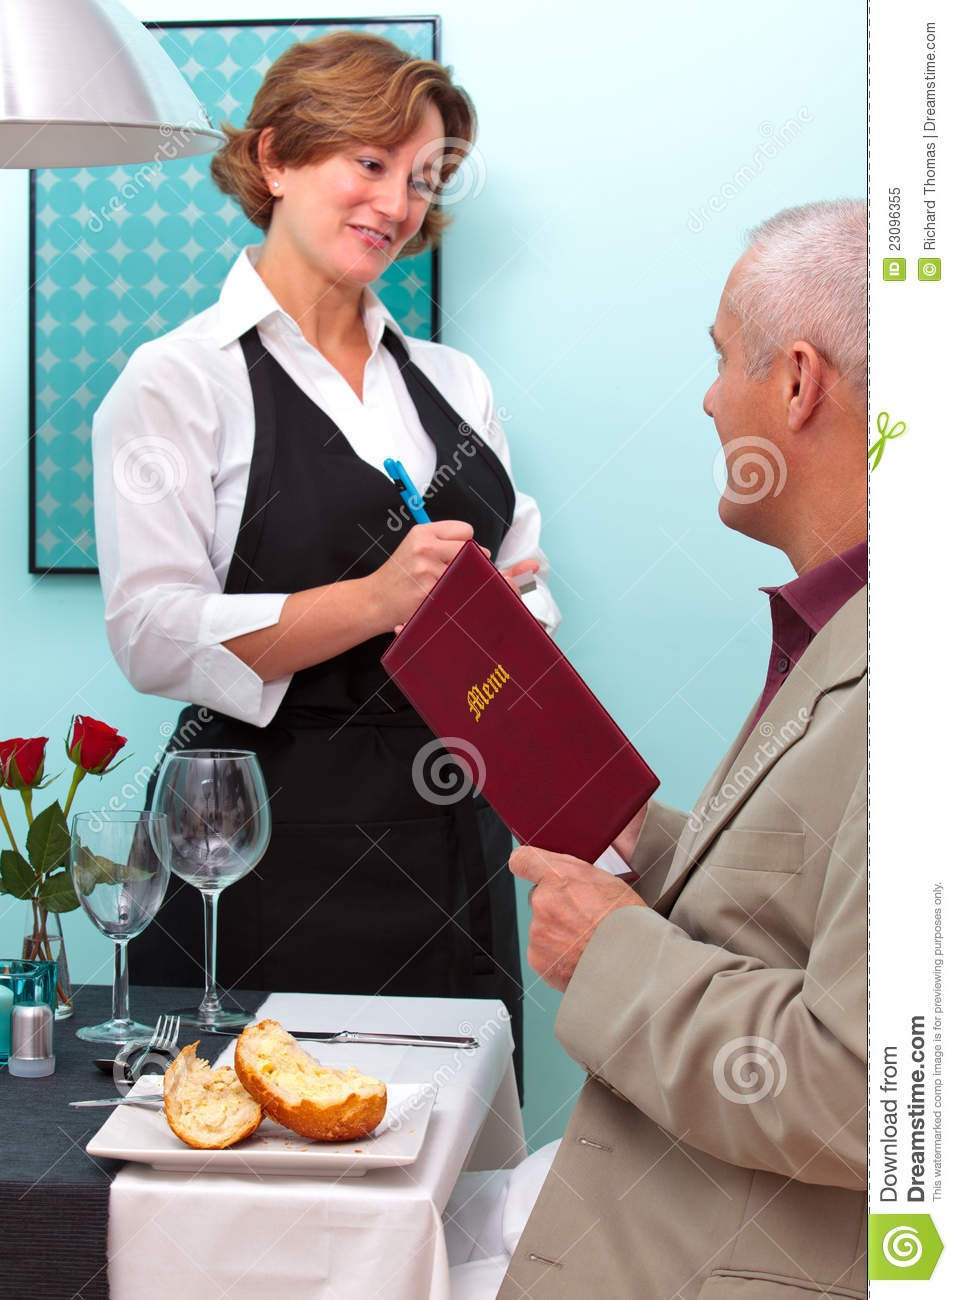 The menu is one of the dirtiest object a costumer handles in the restaurant